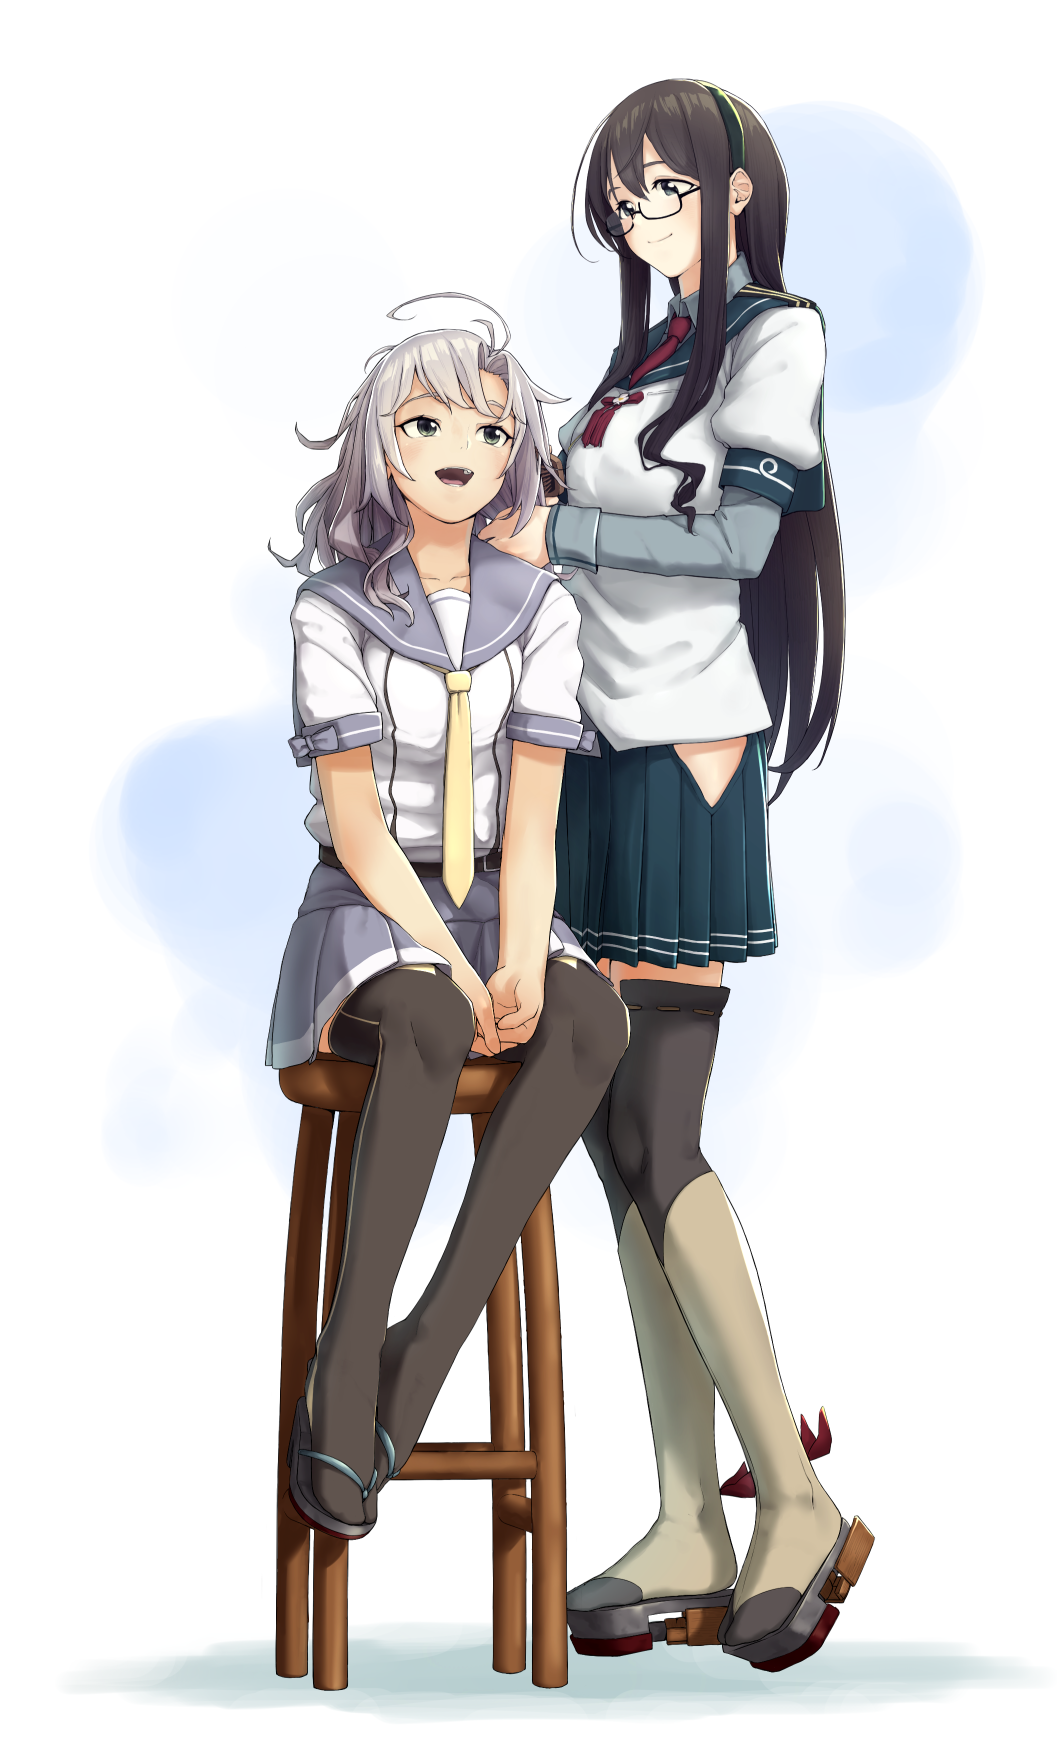 2girls black_hair black_legwear blue_eyes blue_sailor_collar blue_skirt enoshito full_body glasses green_eyes grey_hair grey_sailor_collar grey_skirt hairband highres hip_vent kantai_collection kinugasa_(kantai_collection) long_hair multiple_girls necktie ooyodo_(kantai_collection) pleated_skirt red_neckwear sailor_collar school_uniform semi-rimless_eyewear serafuku short_twintails sitting skirt standing stool thigh-highs twintails yellow_neckwear